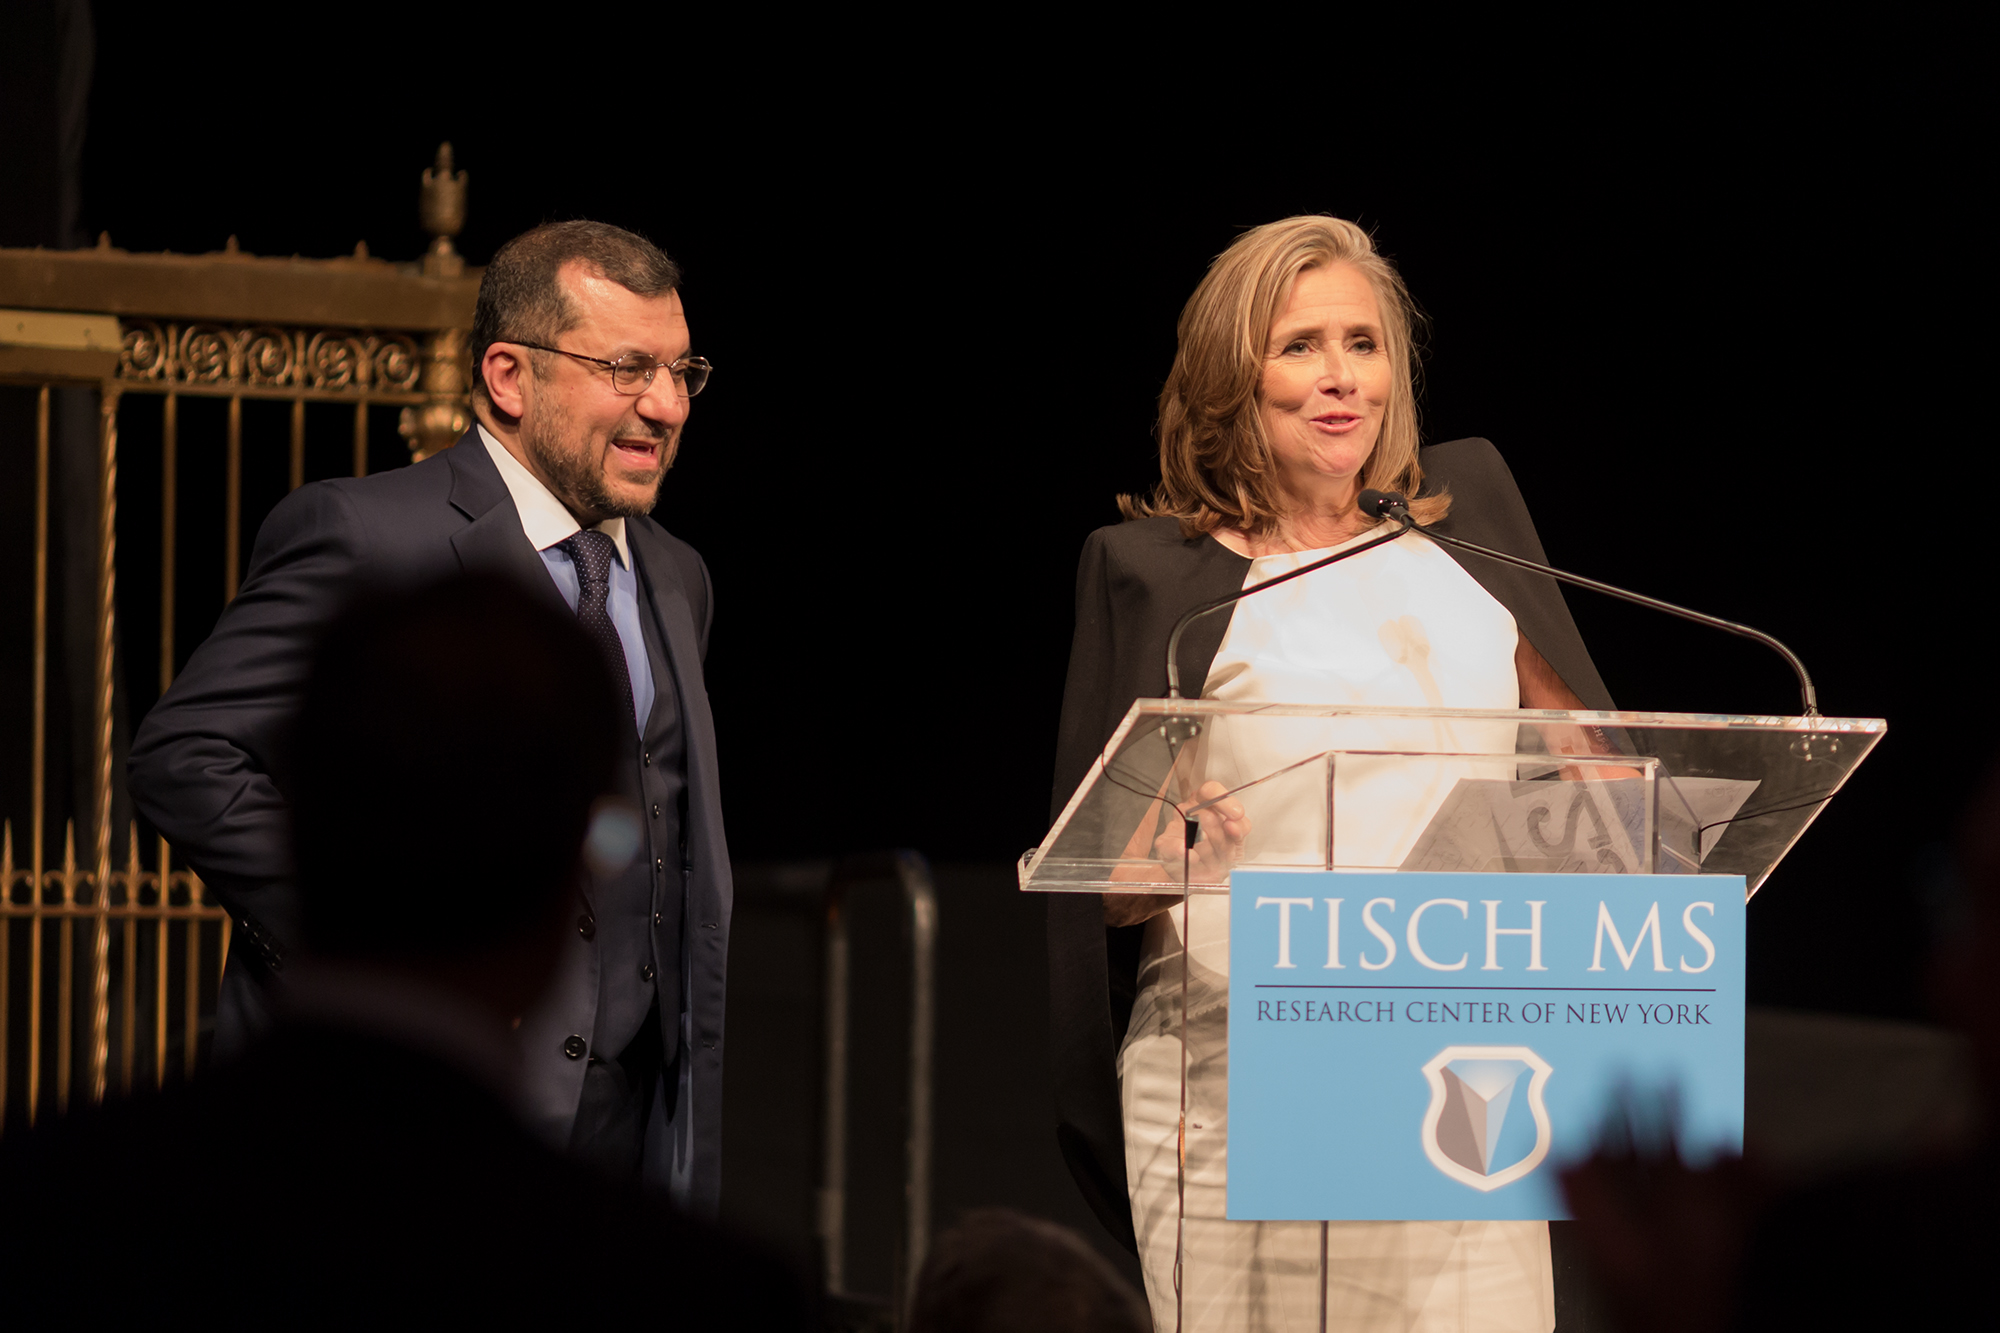 Meredith Vieira Welcomes Guests to the 2018 Future Without MS Gala